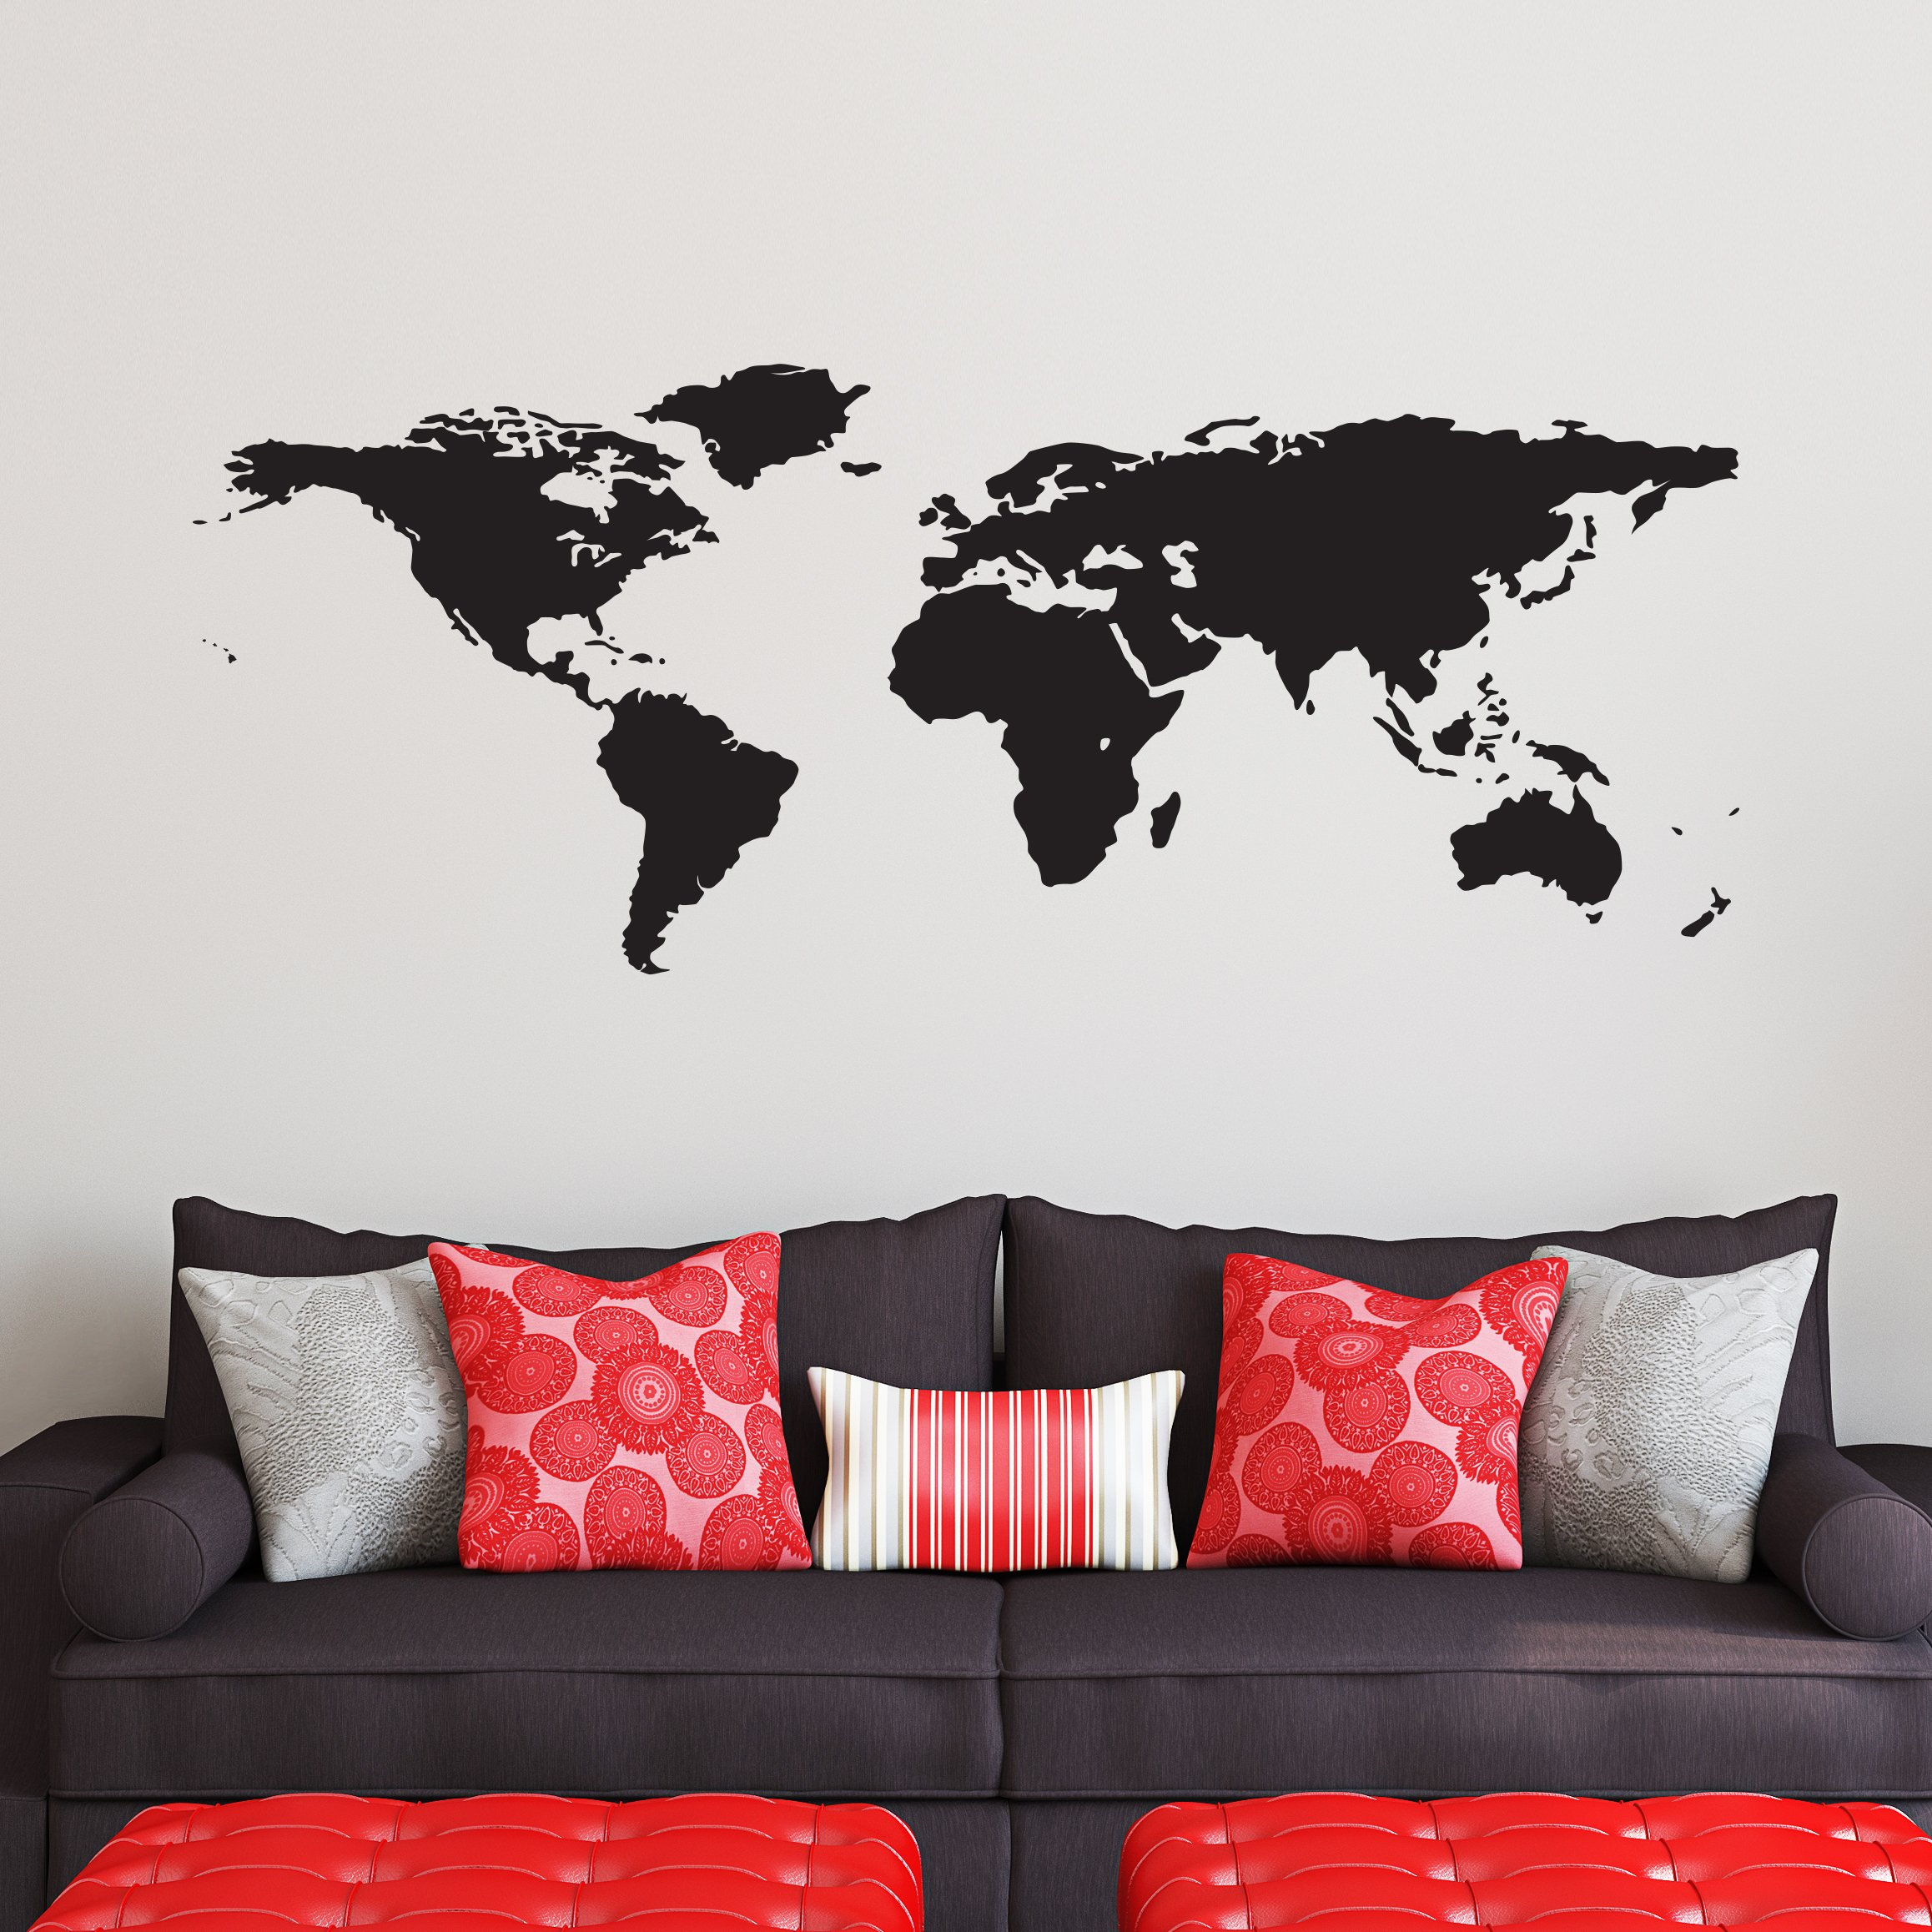 Cheap atlas decal find atlas decal deals on line at alibaba get quotations black world map wall decal easy to apply modern large earth mural vinyl atlas gumiabroncs Gallery